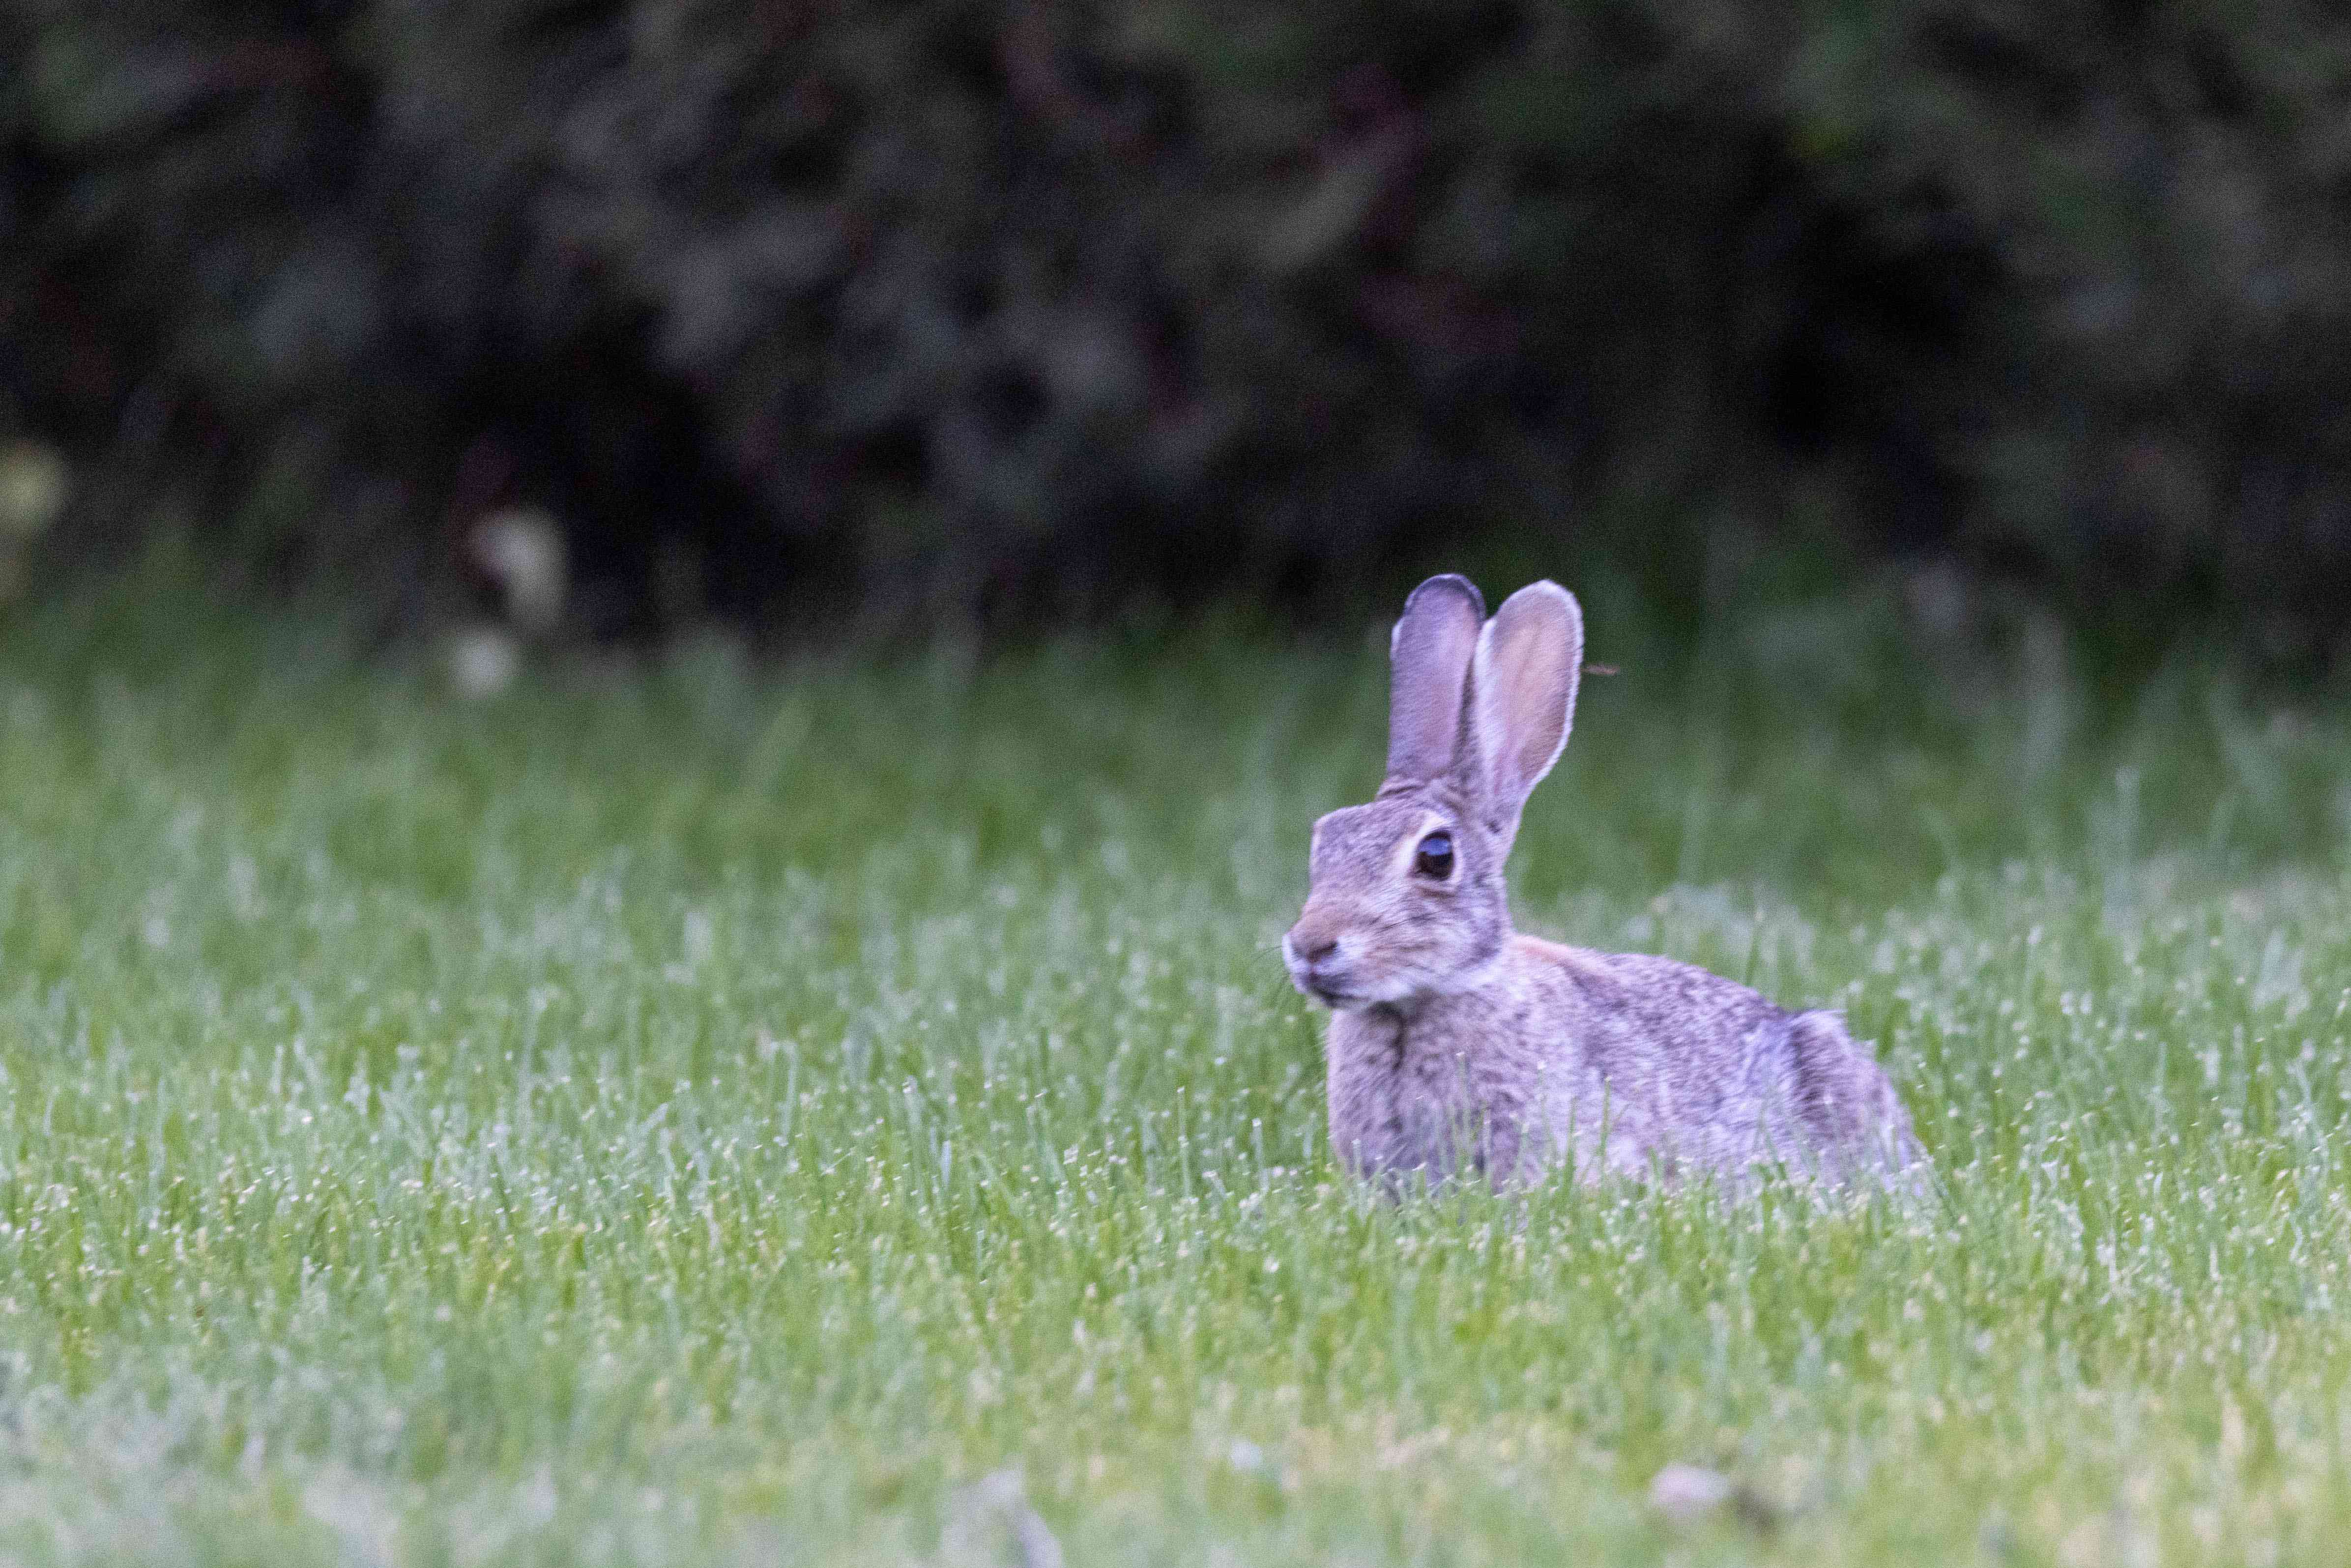 a small wild rabbit peers around in backyard with bushes in background